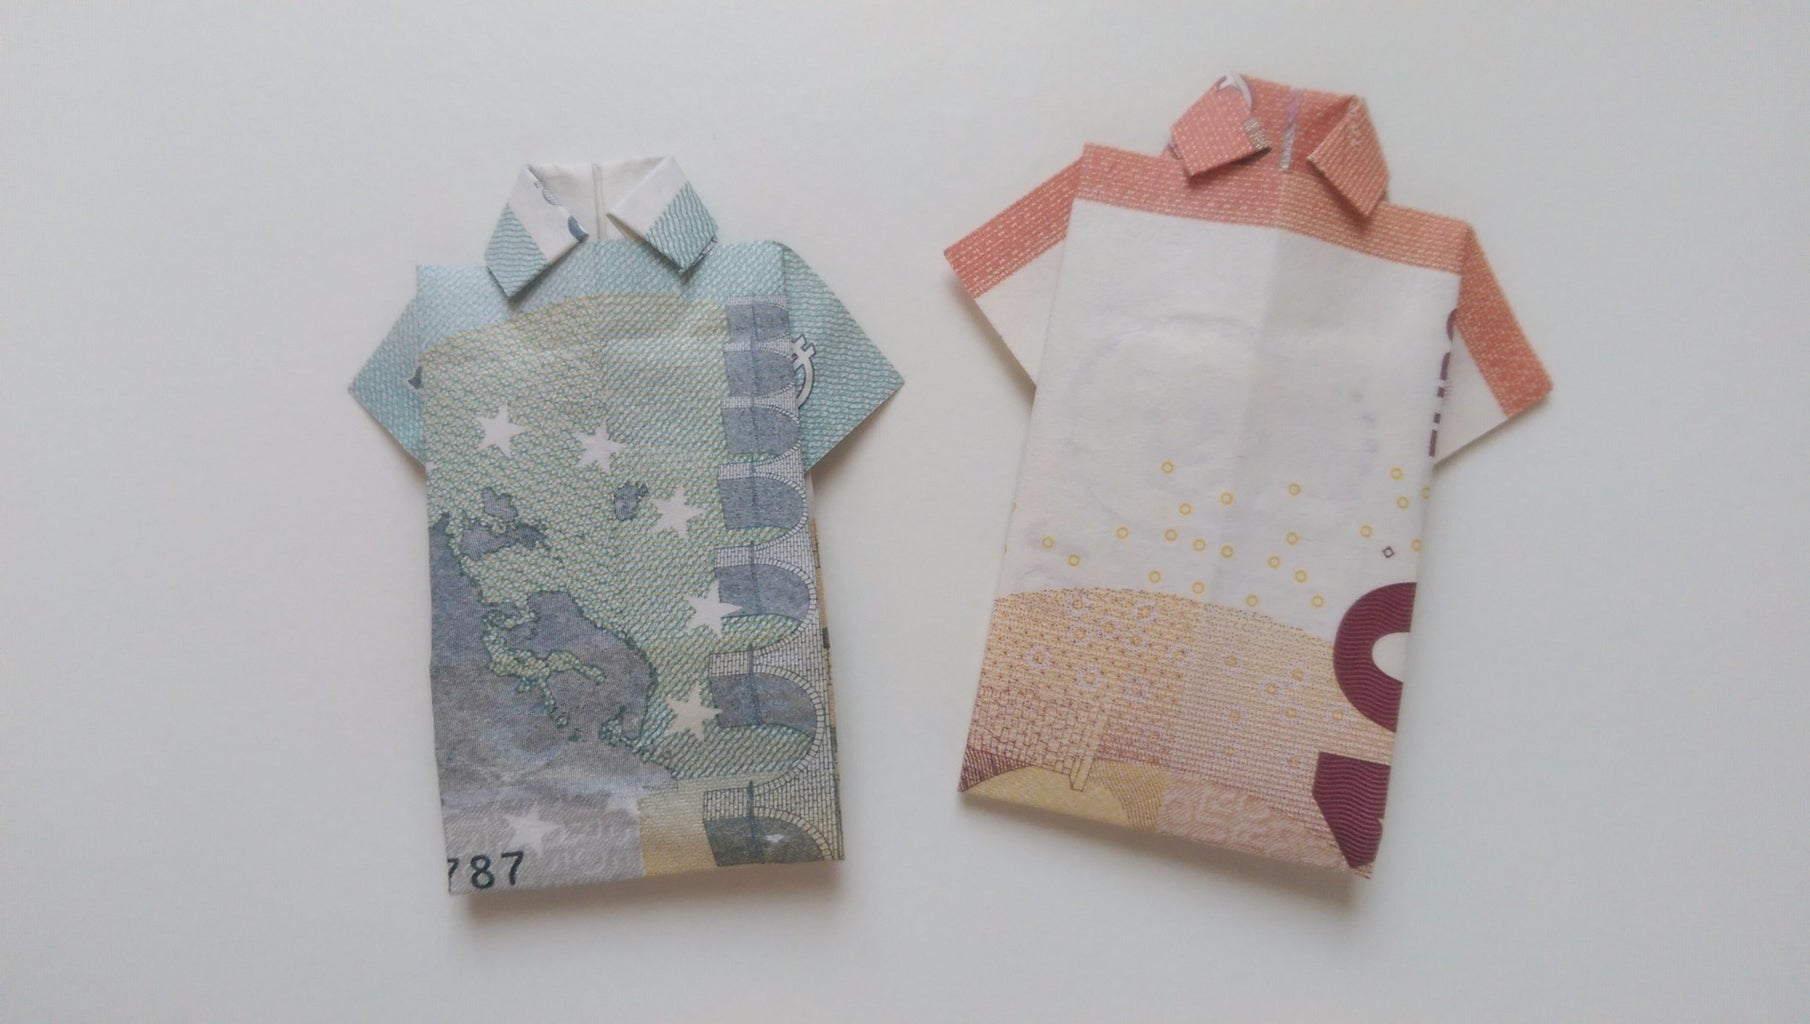 How to Fold a Shirt From Paper Money